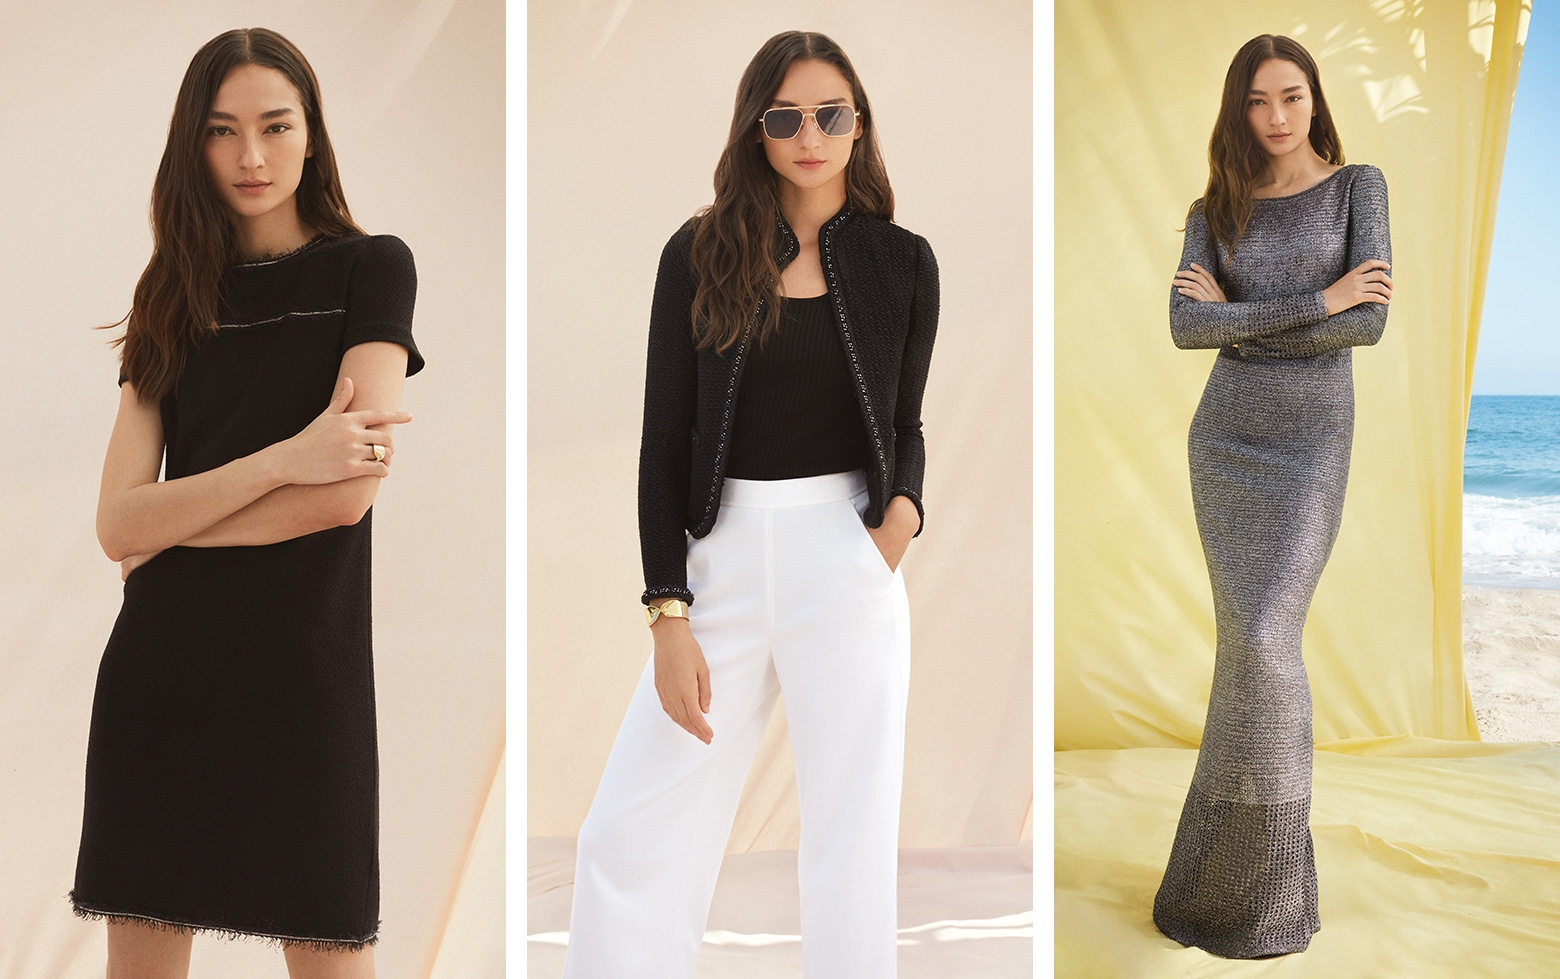 Collection of Saint John Resort 2019 Looks Continued